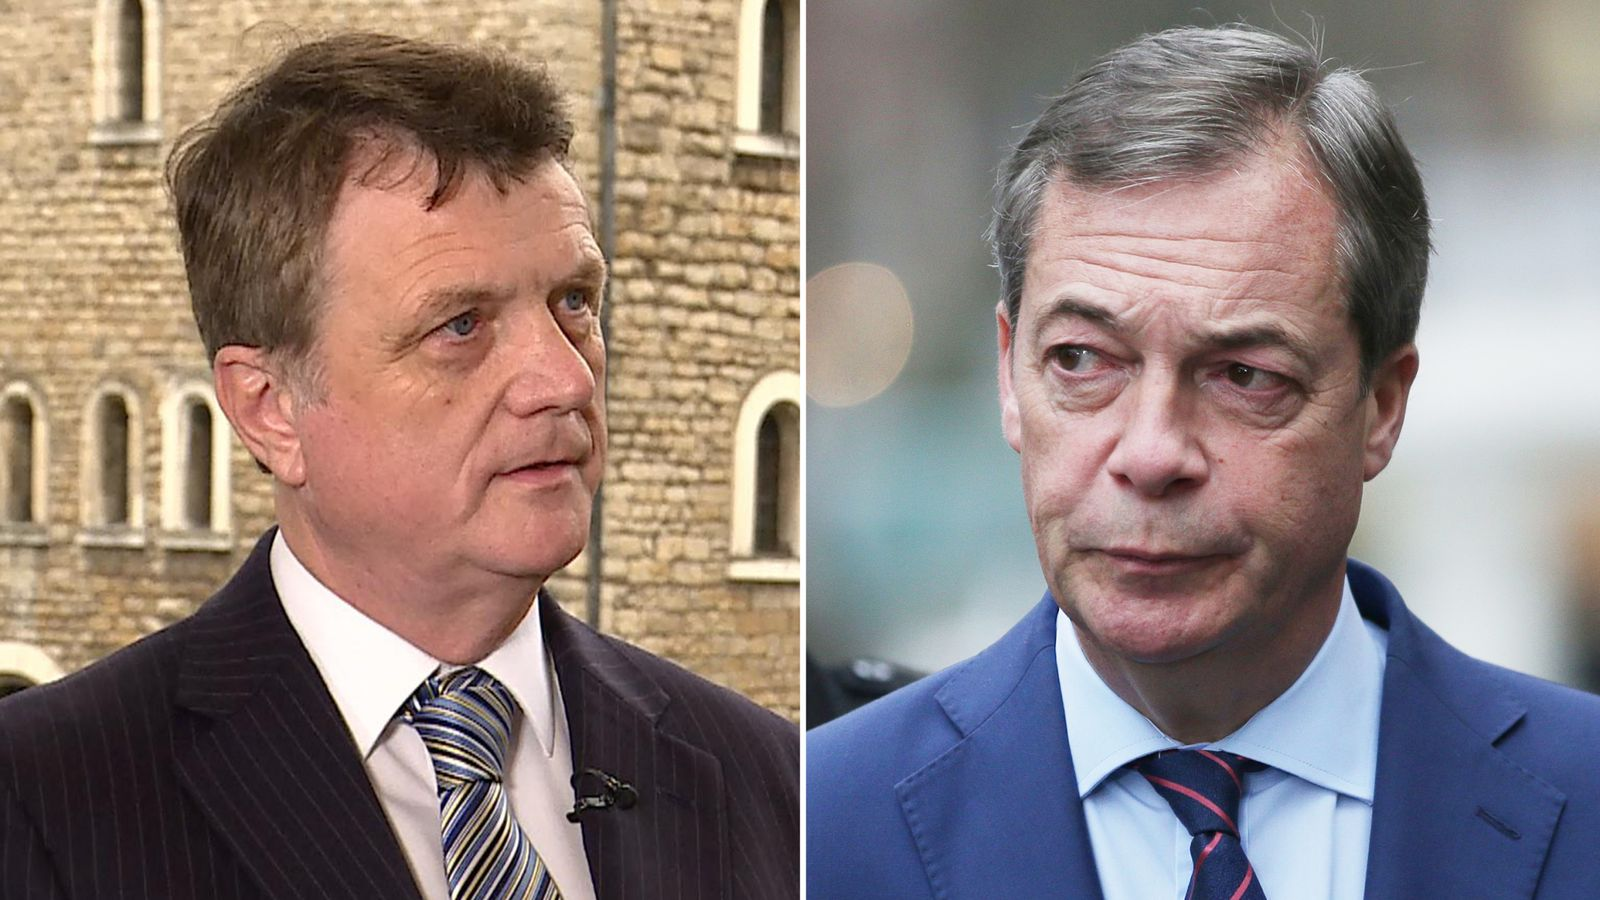 UKIP leader Gerard Batten accuses Nigel Farage of 'sour grapes' for quitting party